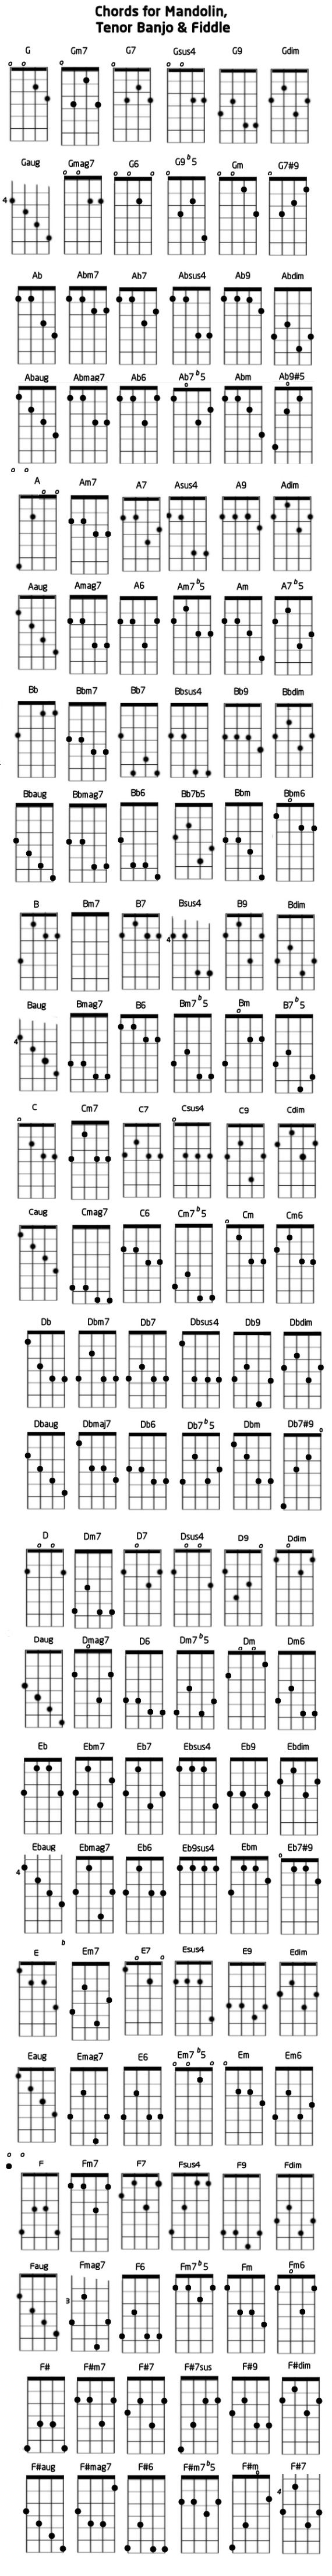 17 Best images about tenor banjo FTW! on Pinterest : Traditional, Sheet music and Ukulele